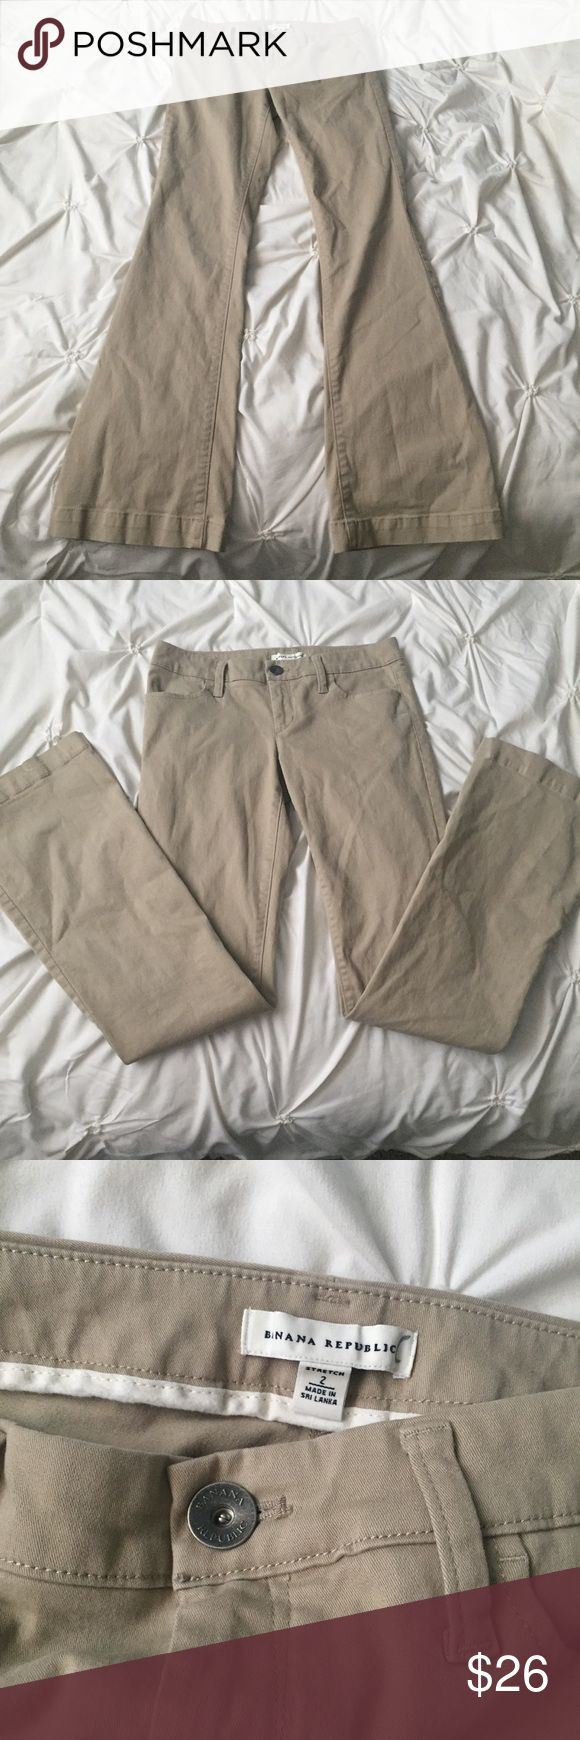 Banana Republic Khaki Stretch Dress Pants Banana Republic Khaki Stretch Dress Pants size 2  - bootcut fit ----- 🚭 All items are from a non-smoking home. 👆🏻Item is as described, feel free to ask questions. 📦 I am a fast shipper with excellent ratings. 👗I love bundles & bundle discounts. Feel free to make an offer! 😍 Like this item? Check out the rest of my closet! 💖 Thanks for looking! Banana Republic Pants Boot Cut & Flare